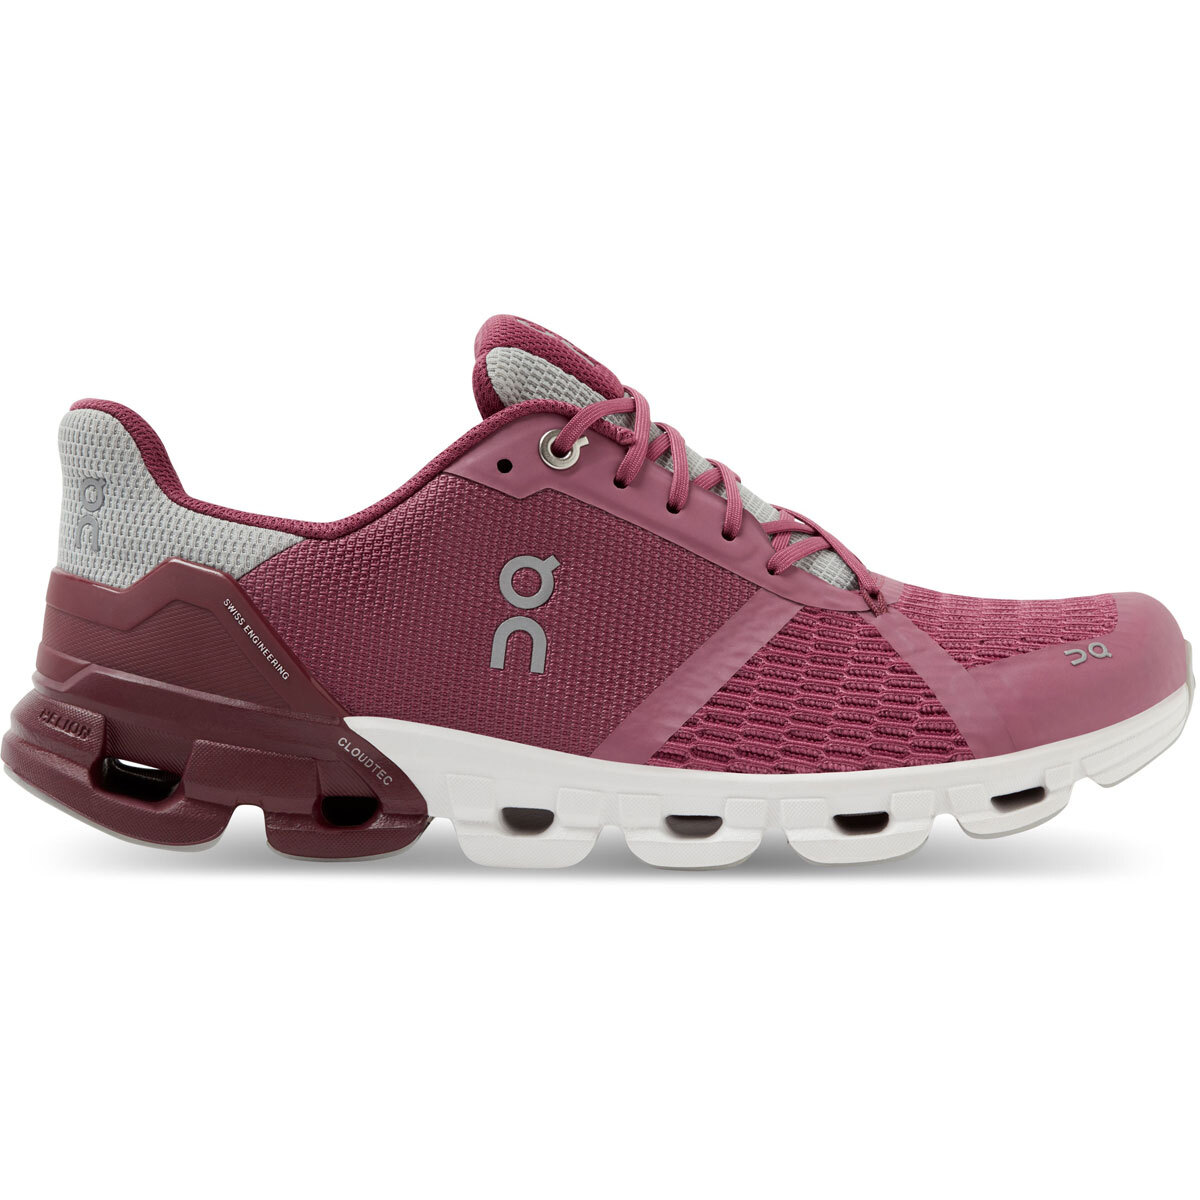 Women's On Cloudflyer 2.0 Running Shoe - Color: Magenta/Mulberry - Size: 5 - Width: Regular, Magenta/Mulberry, large, image 1